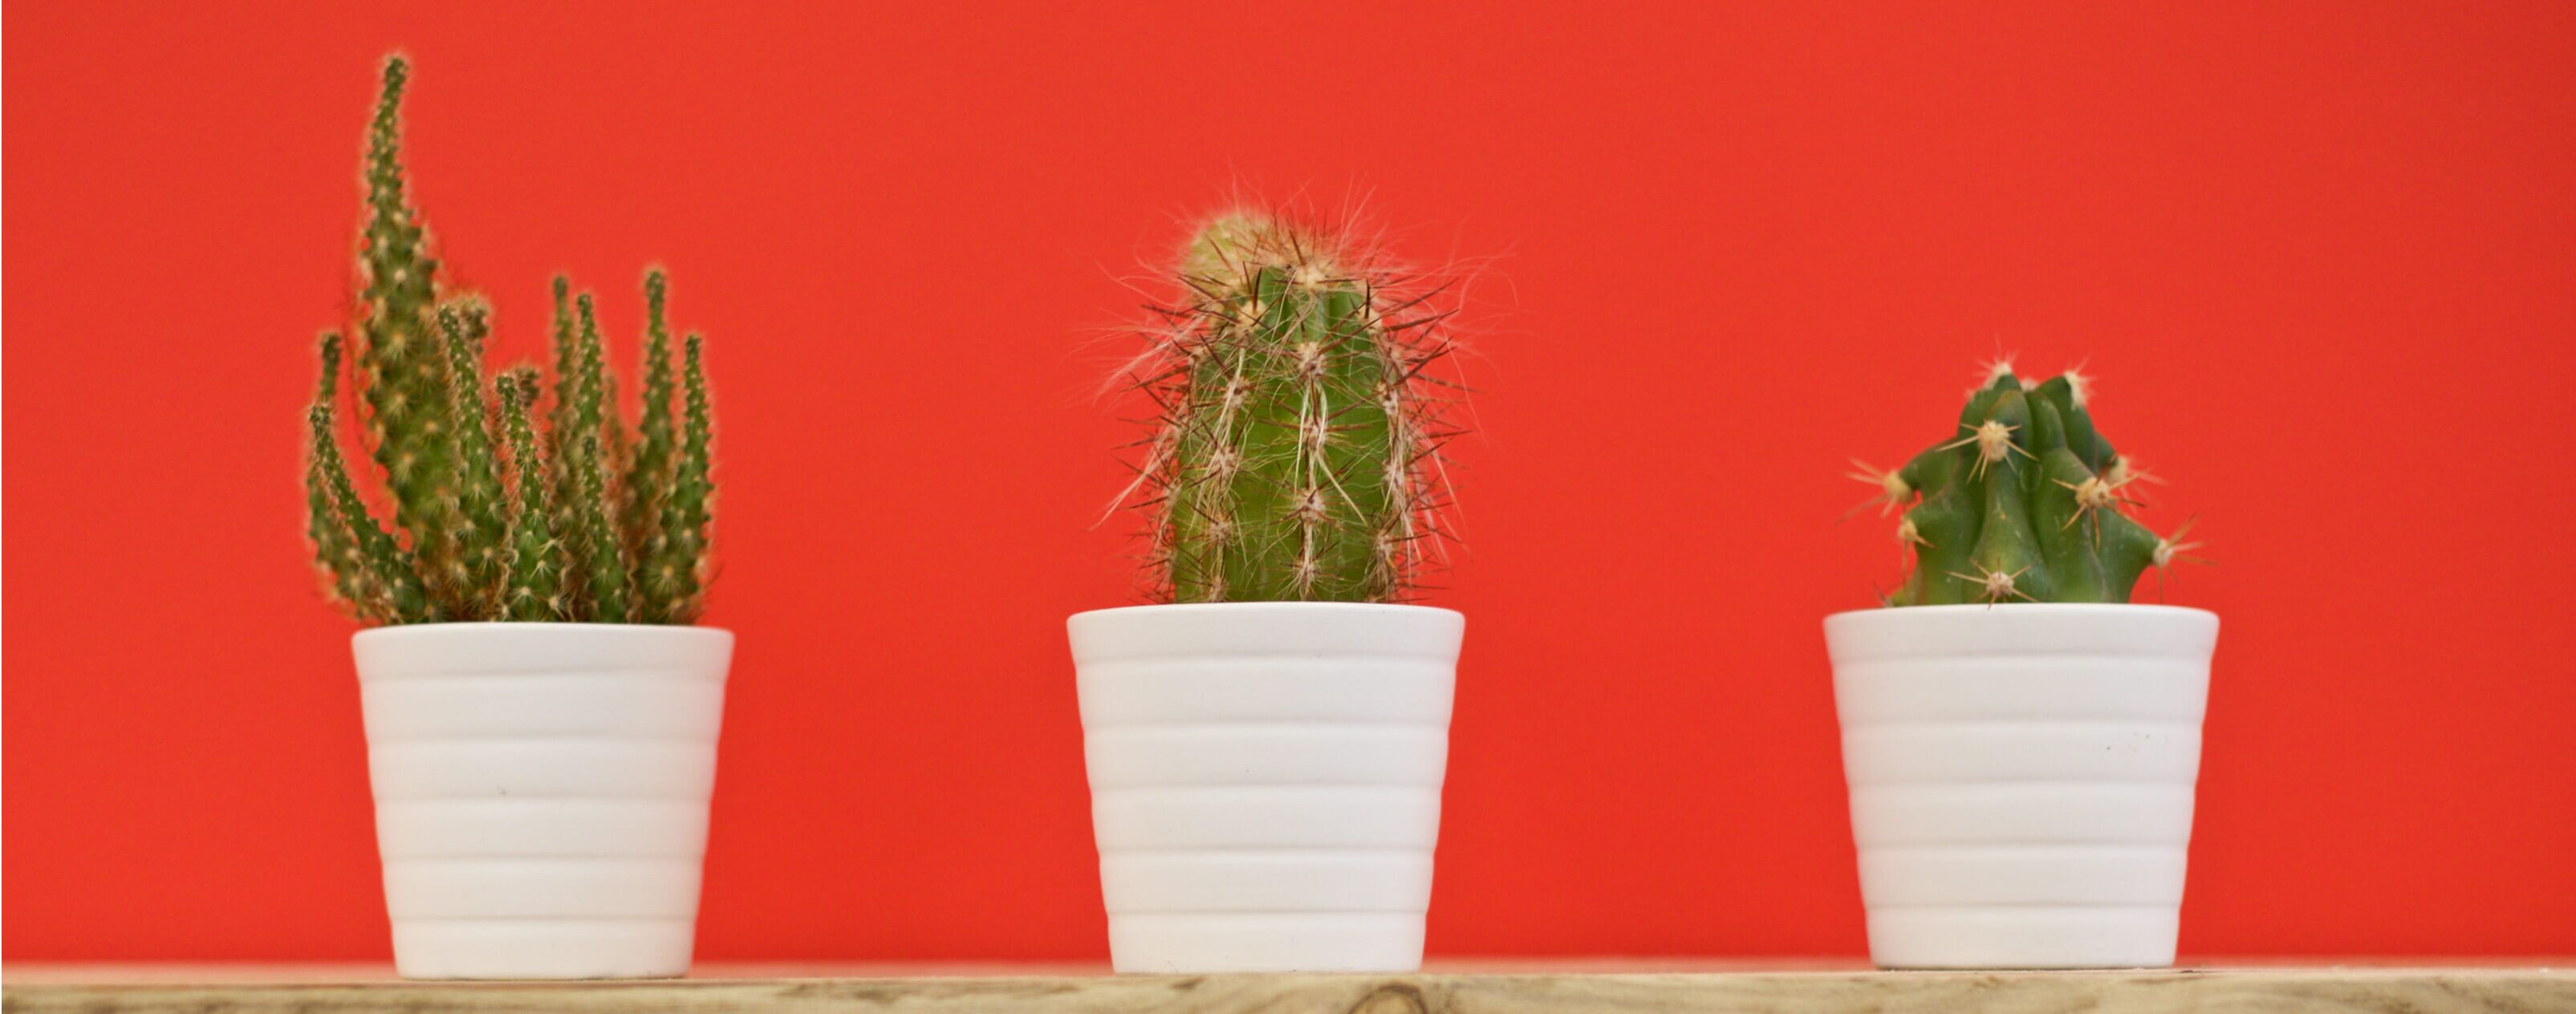 cacti on red wall